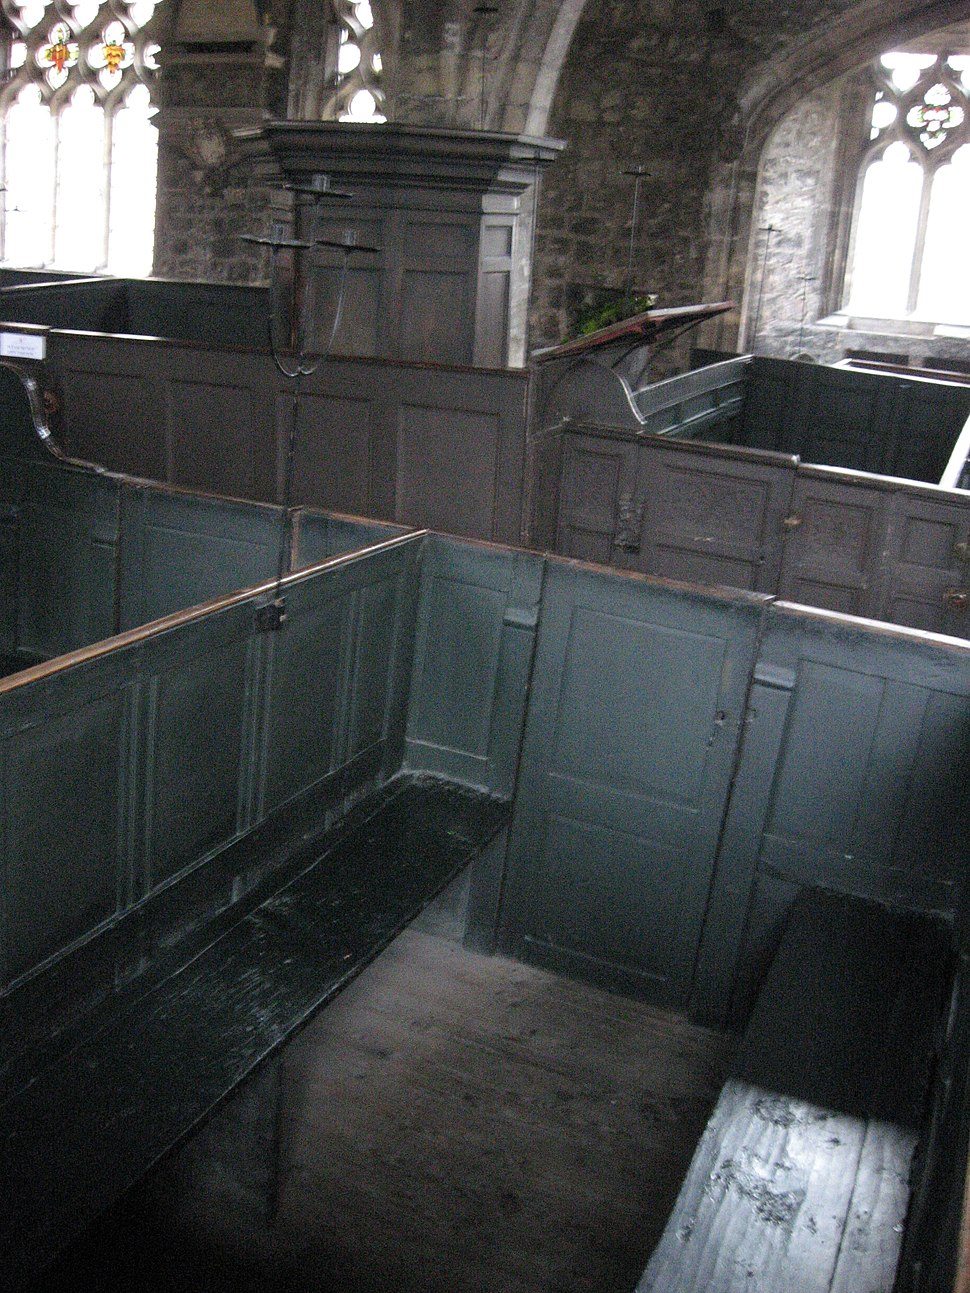 Box pews with pulpit Holy Trinity York